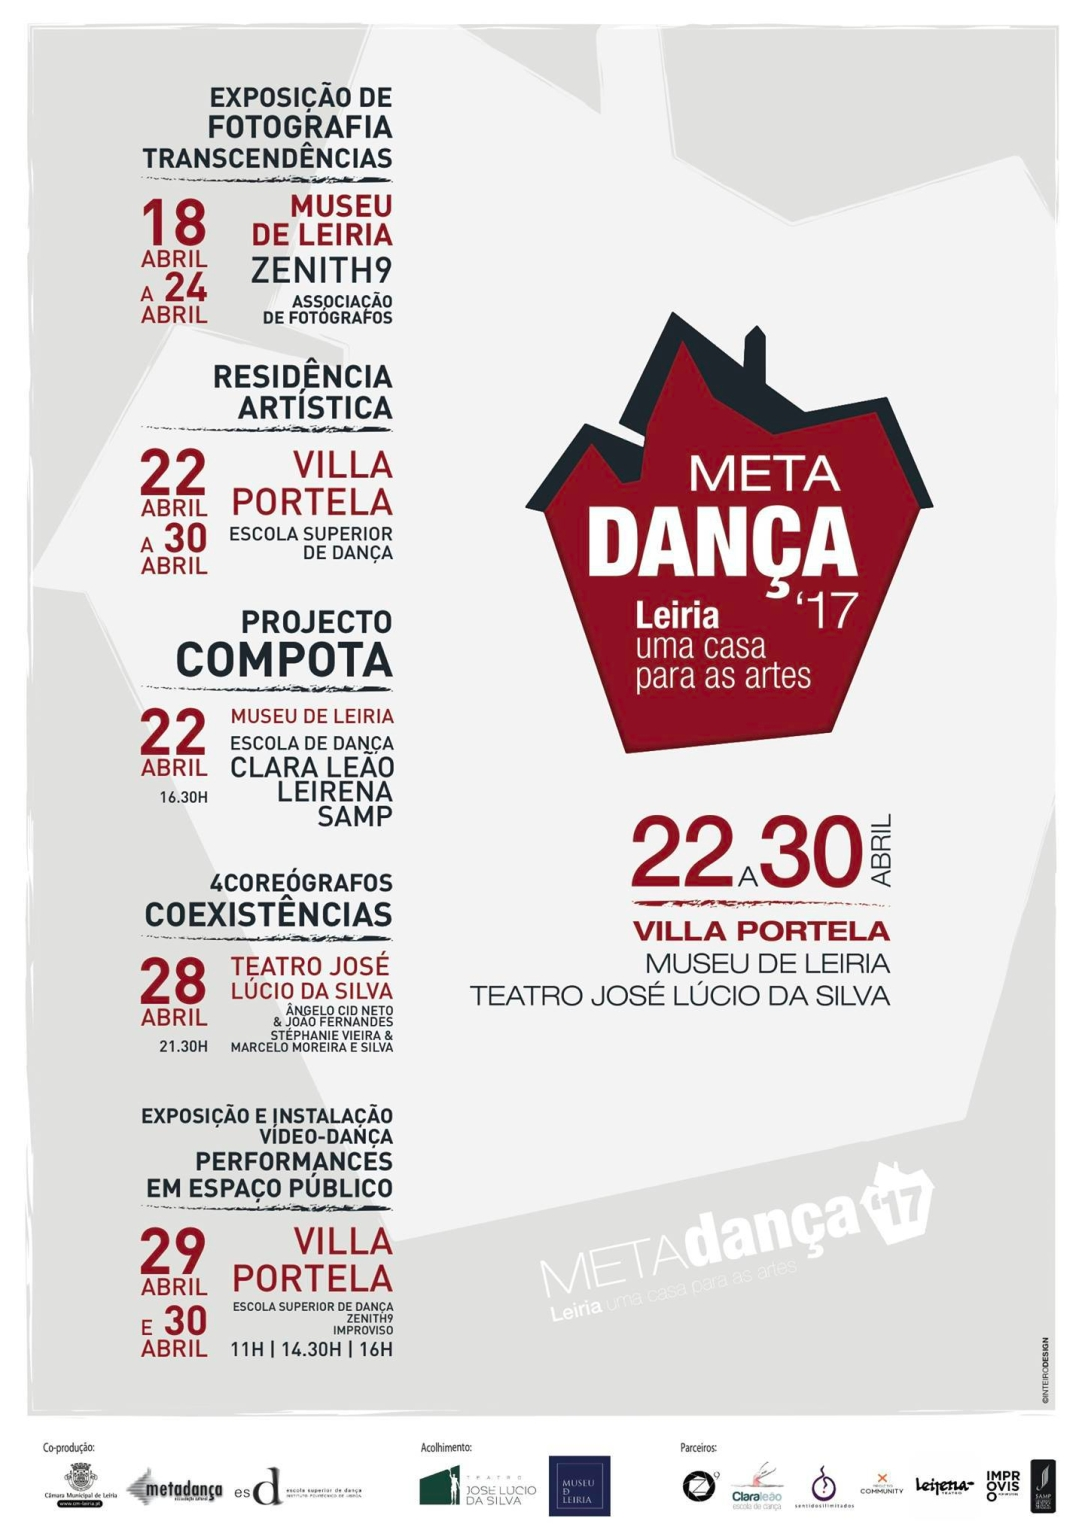 cartaz metadanca 2017